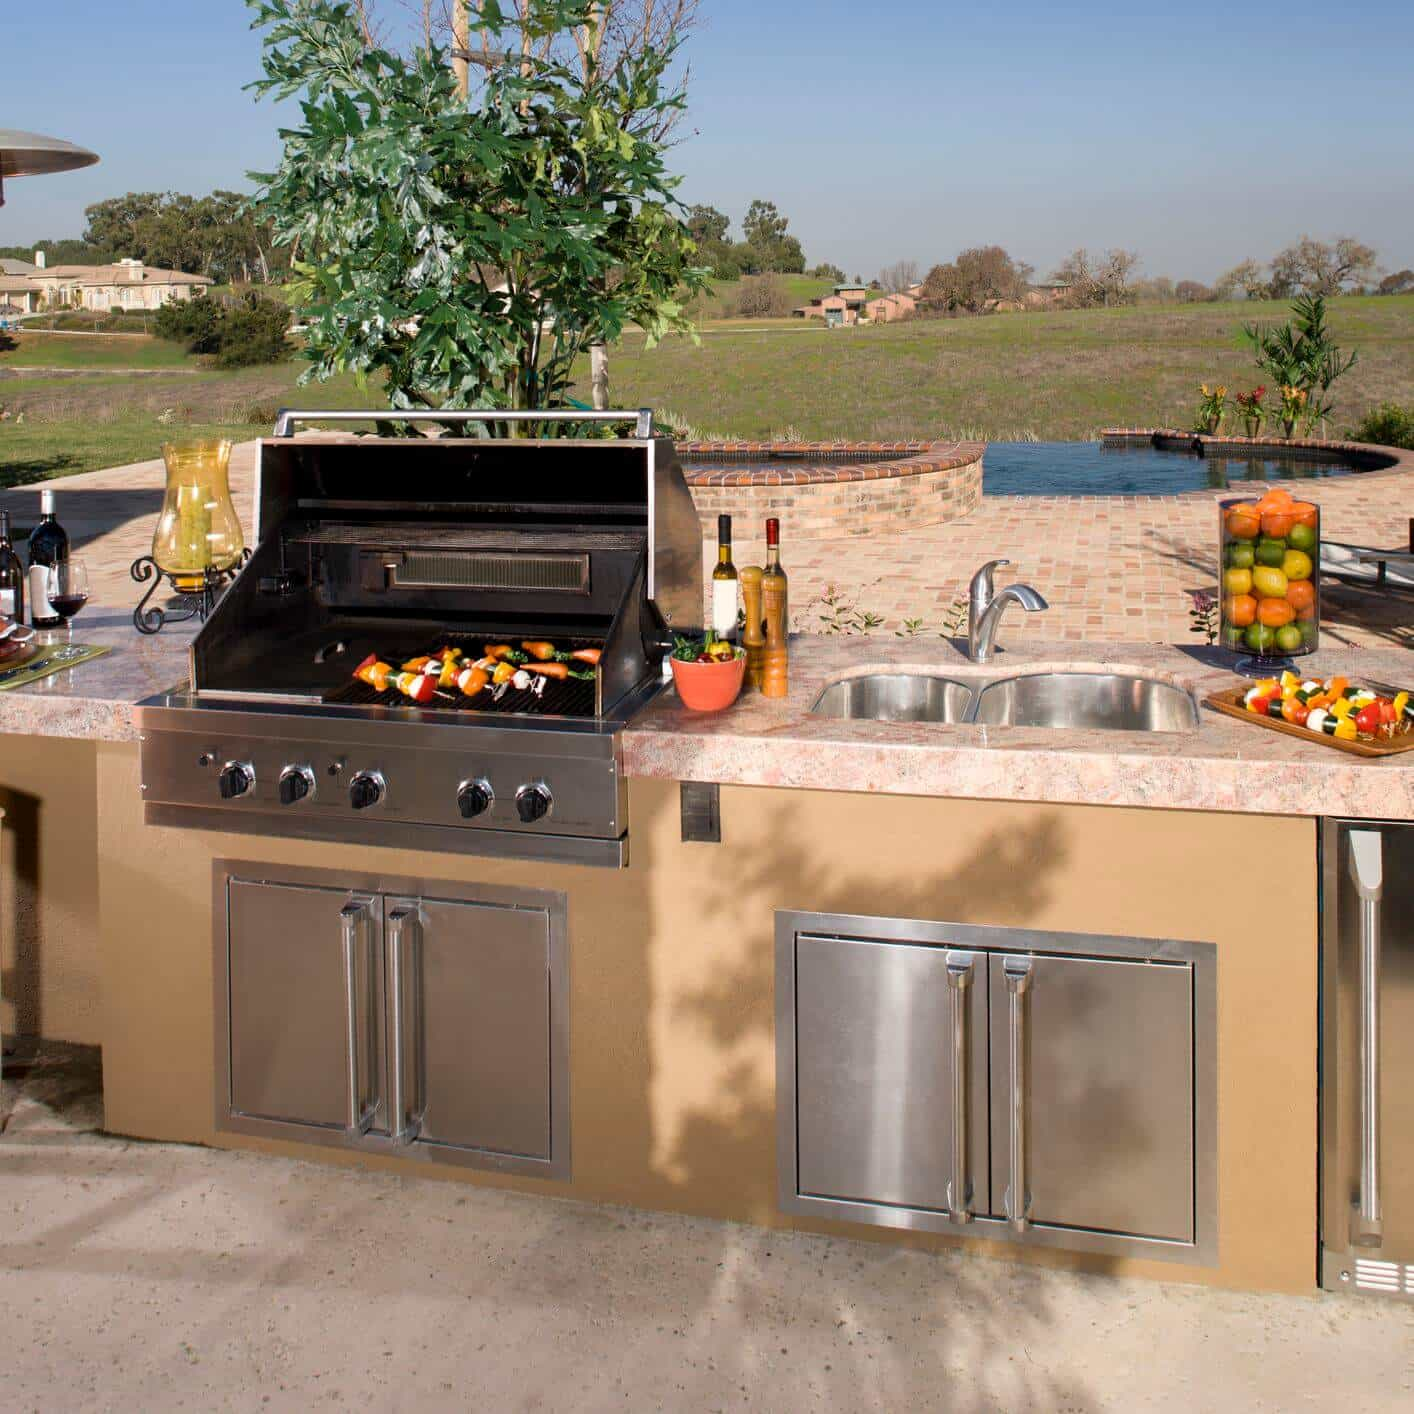 Set Up a BBQ Grill in Your Backyard